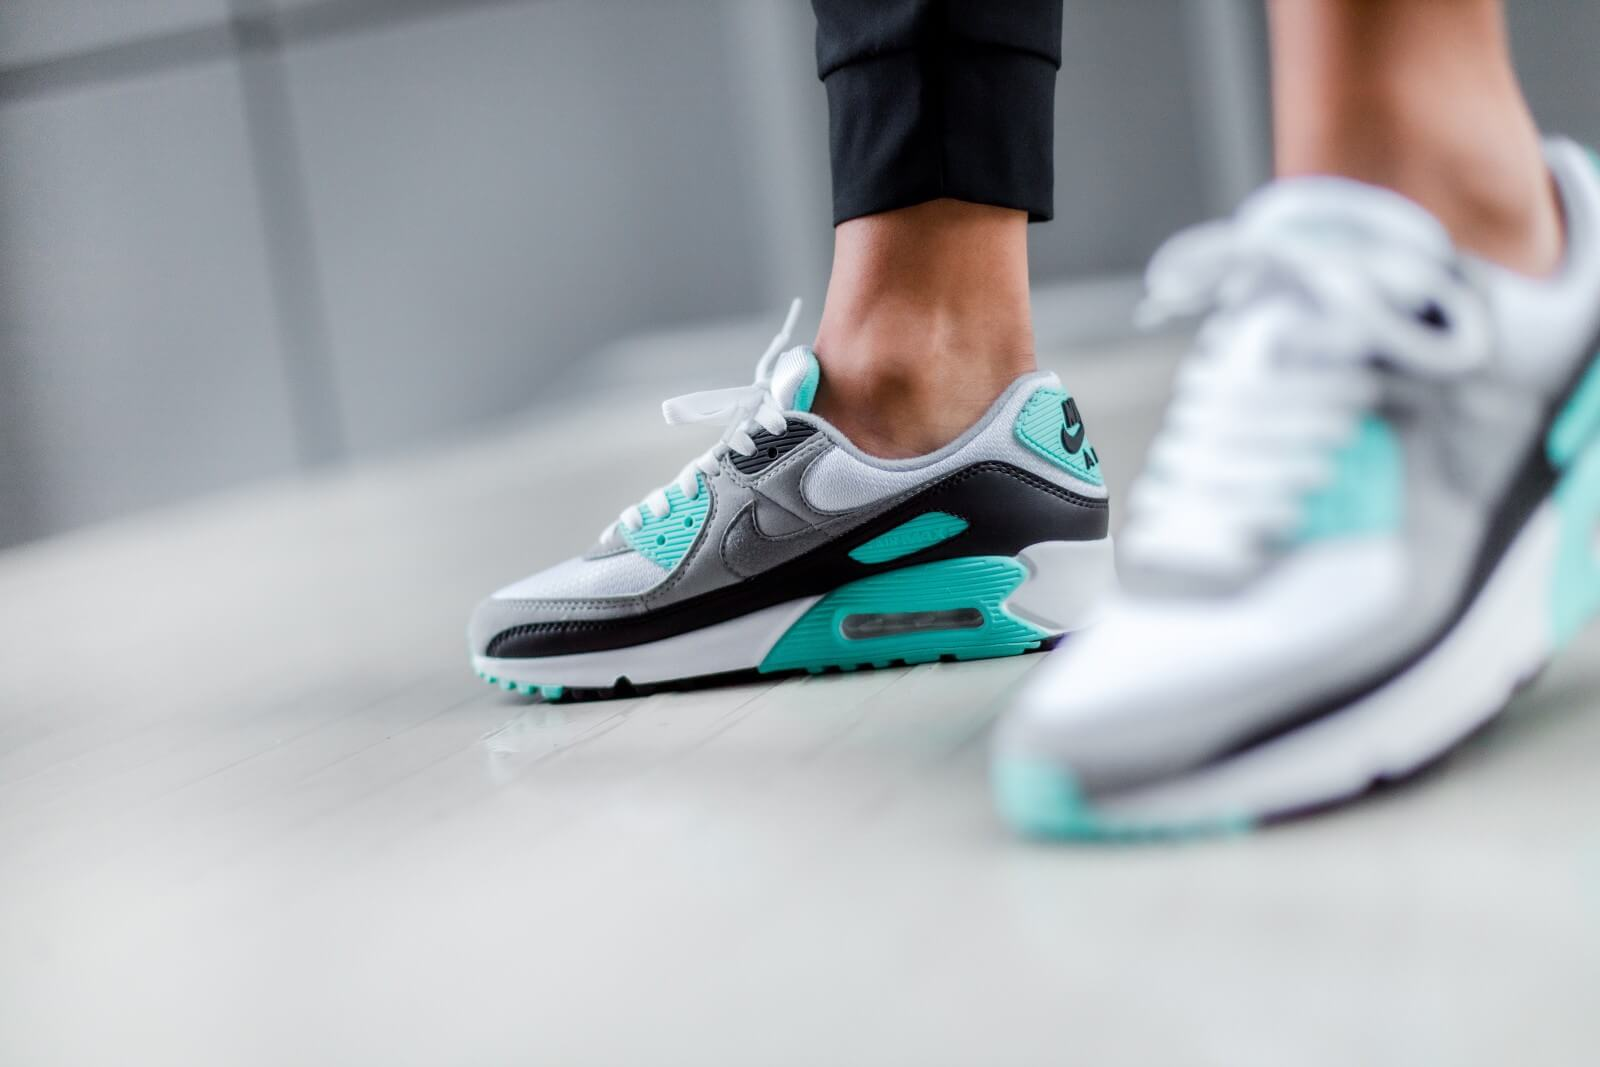 Nike Women's Air Max 90 White/Particle Grey-Hyper Turquoise